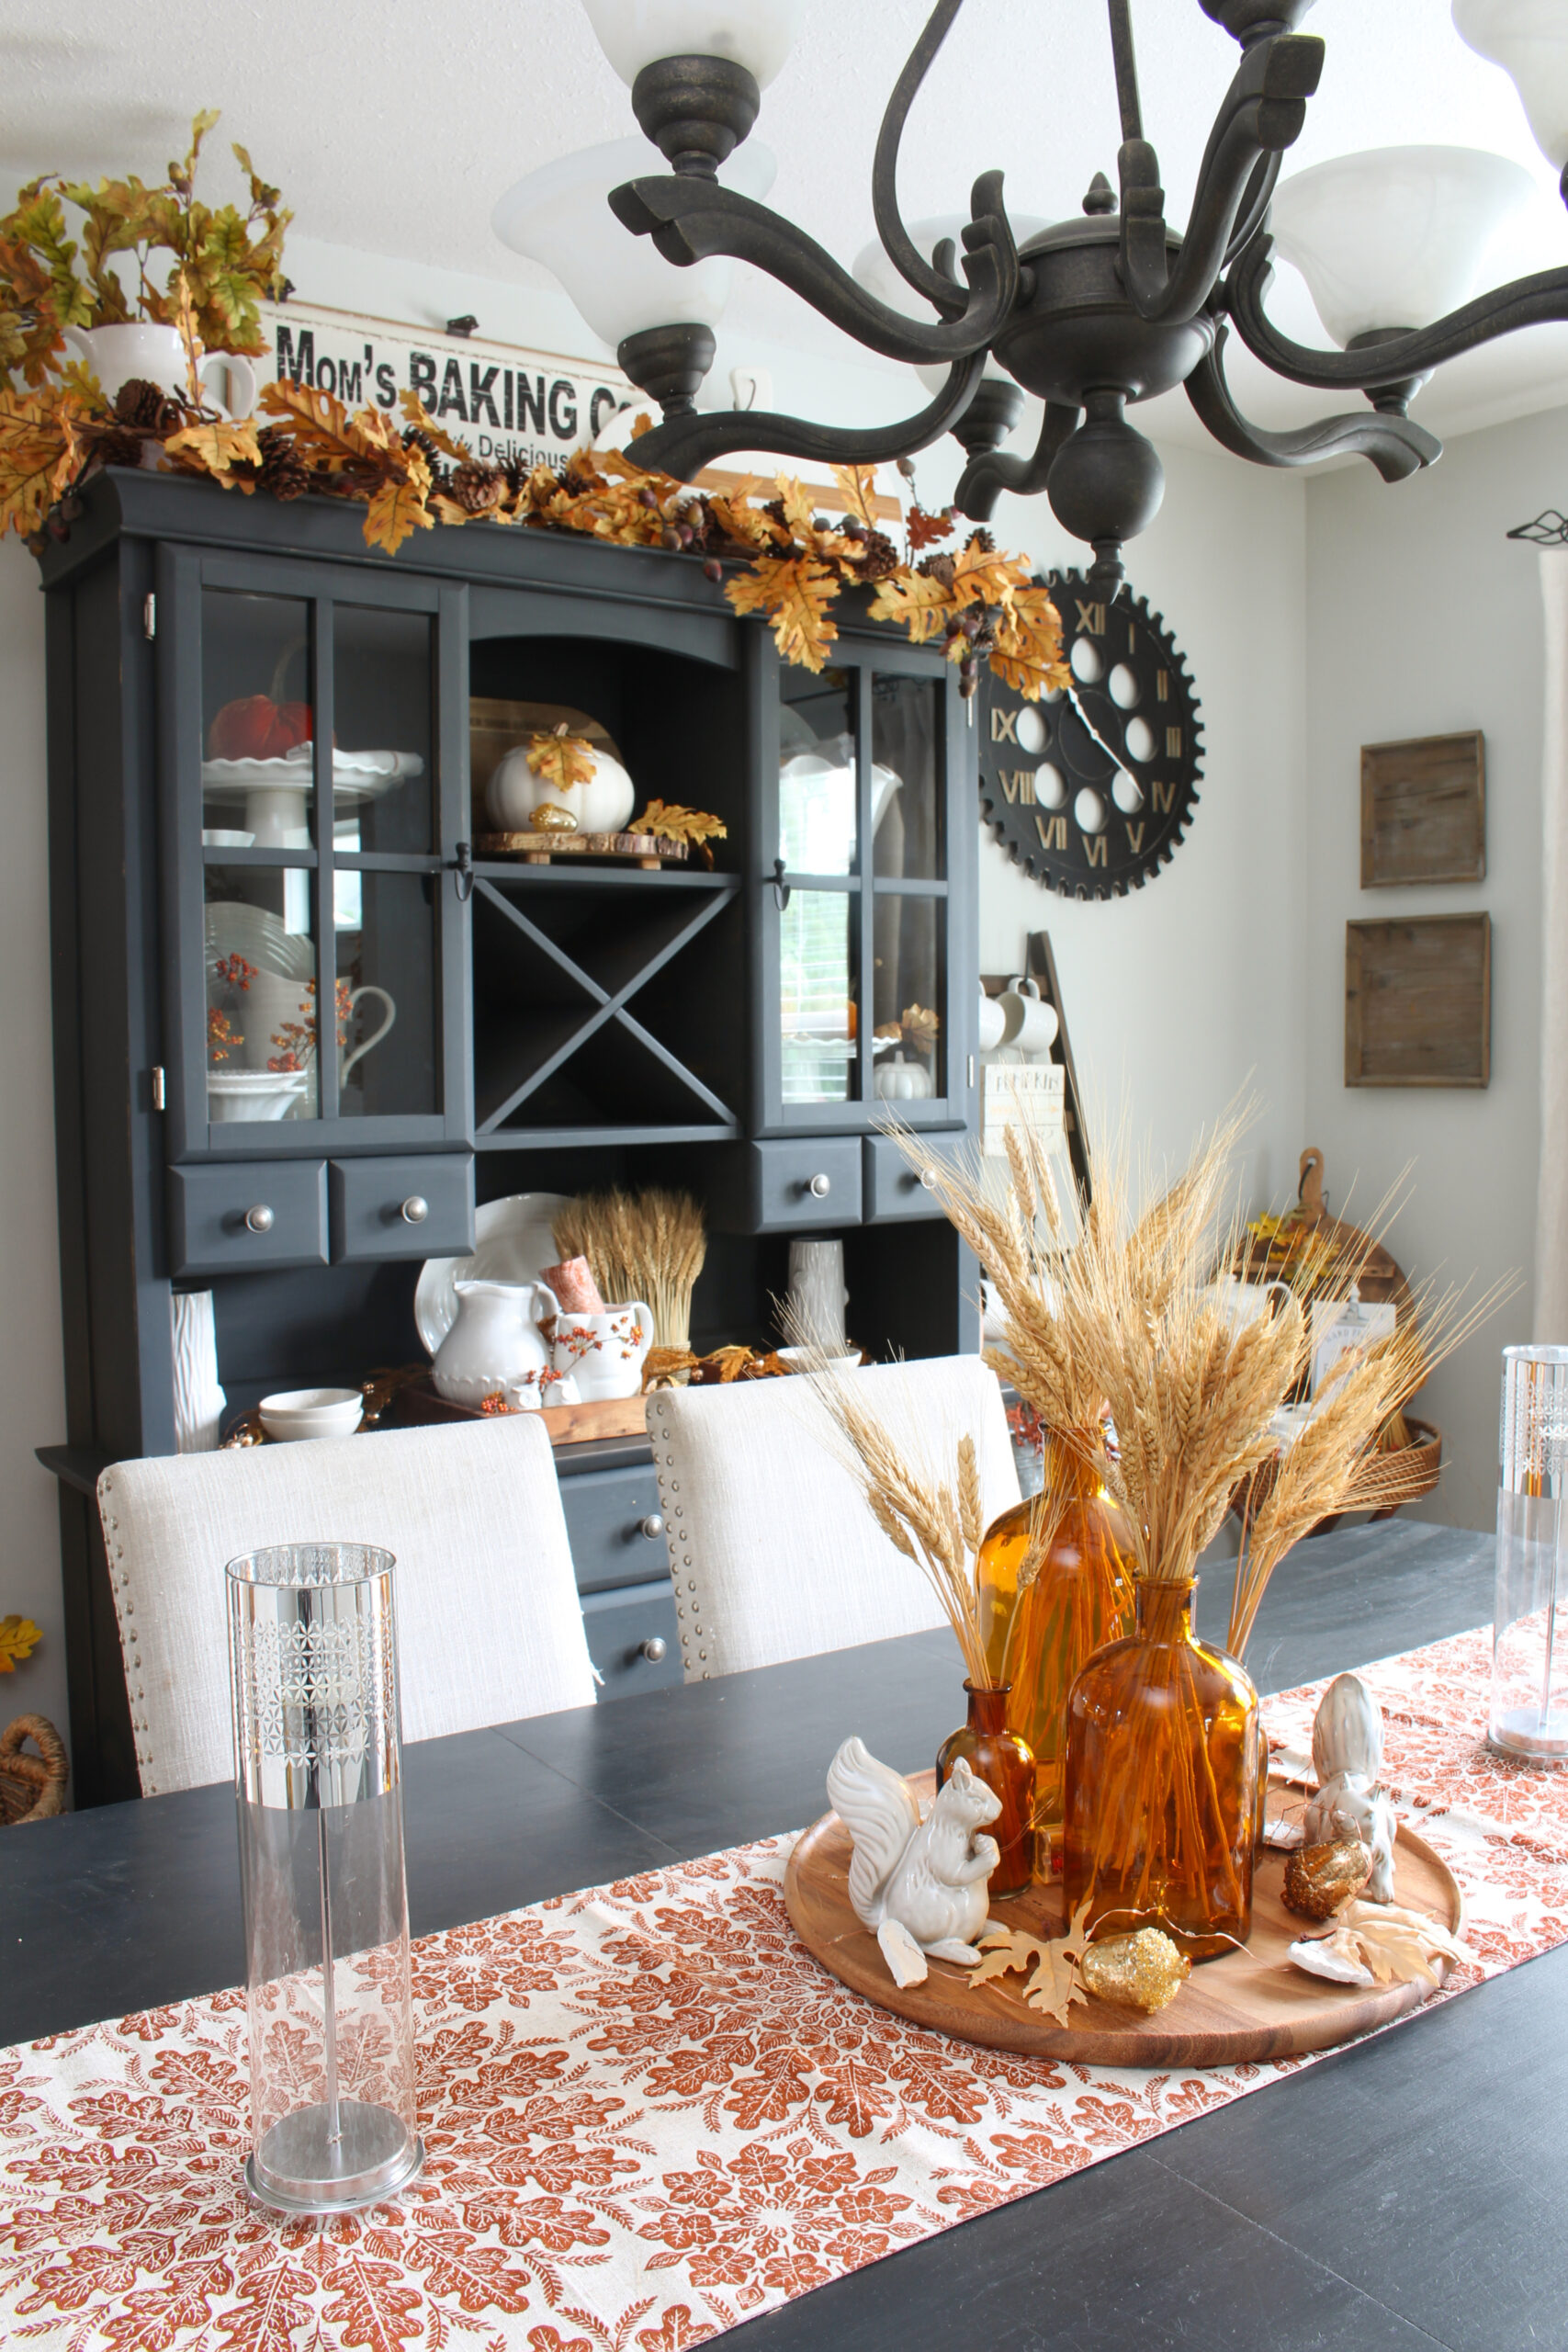 Modern farmhouse style dining room decorated for fall with traditional fall colors.